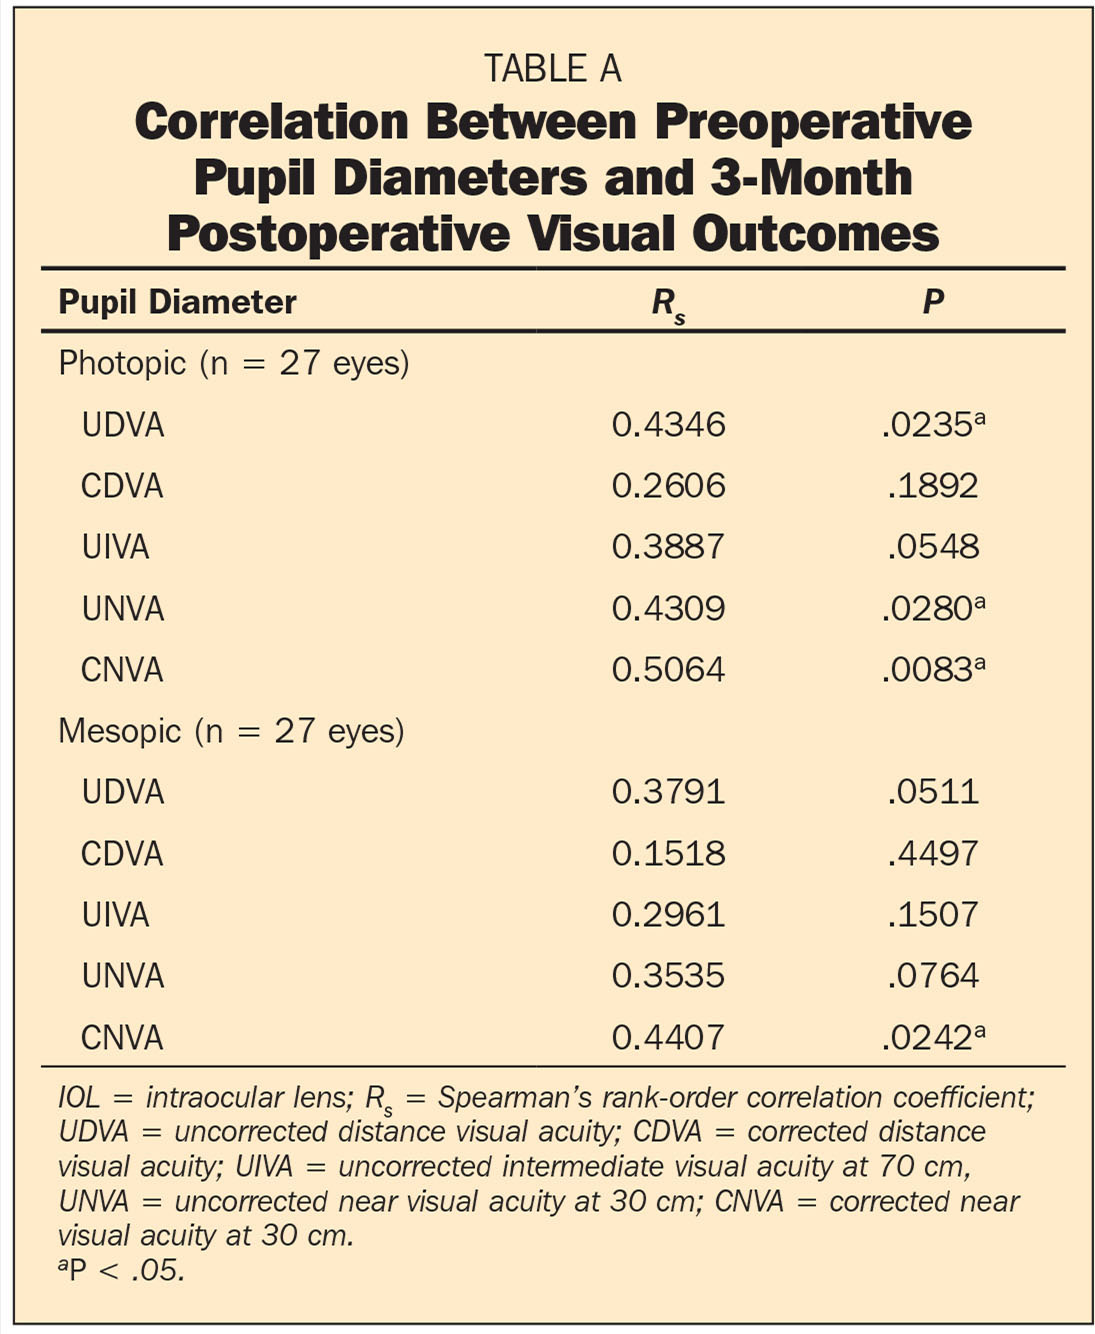 Correlation Between Preoperative Pupil Diameters and 3-Month Postoperative Visual Outcomes